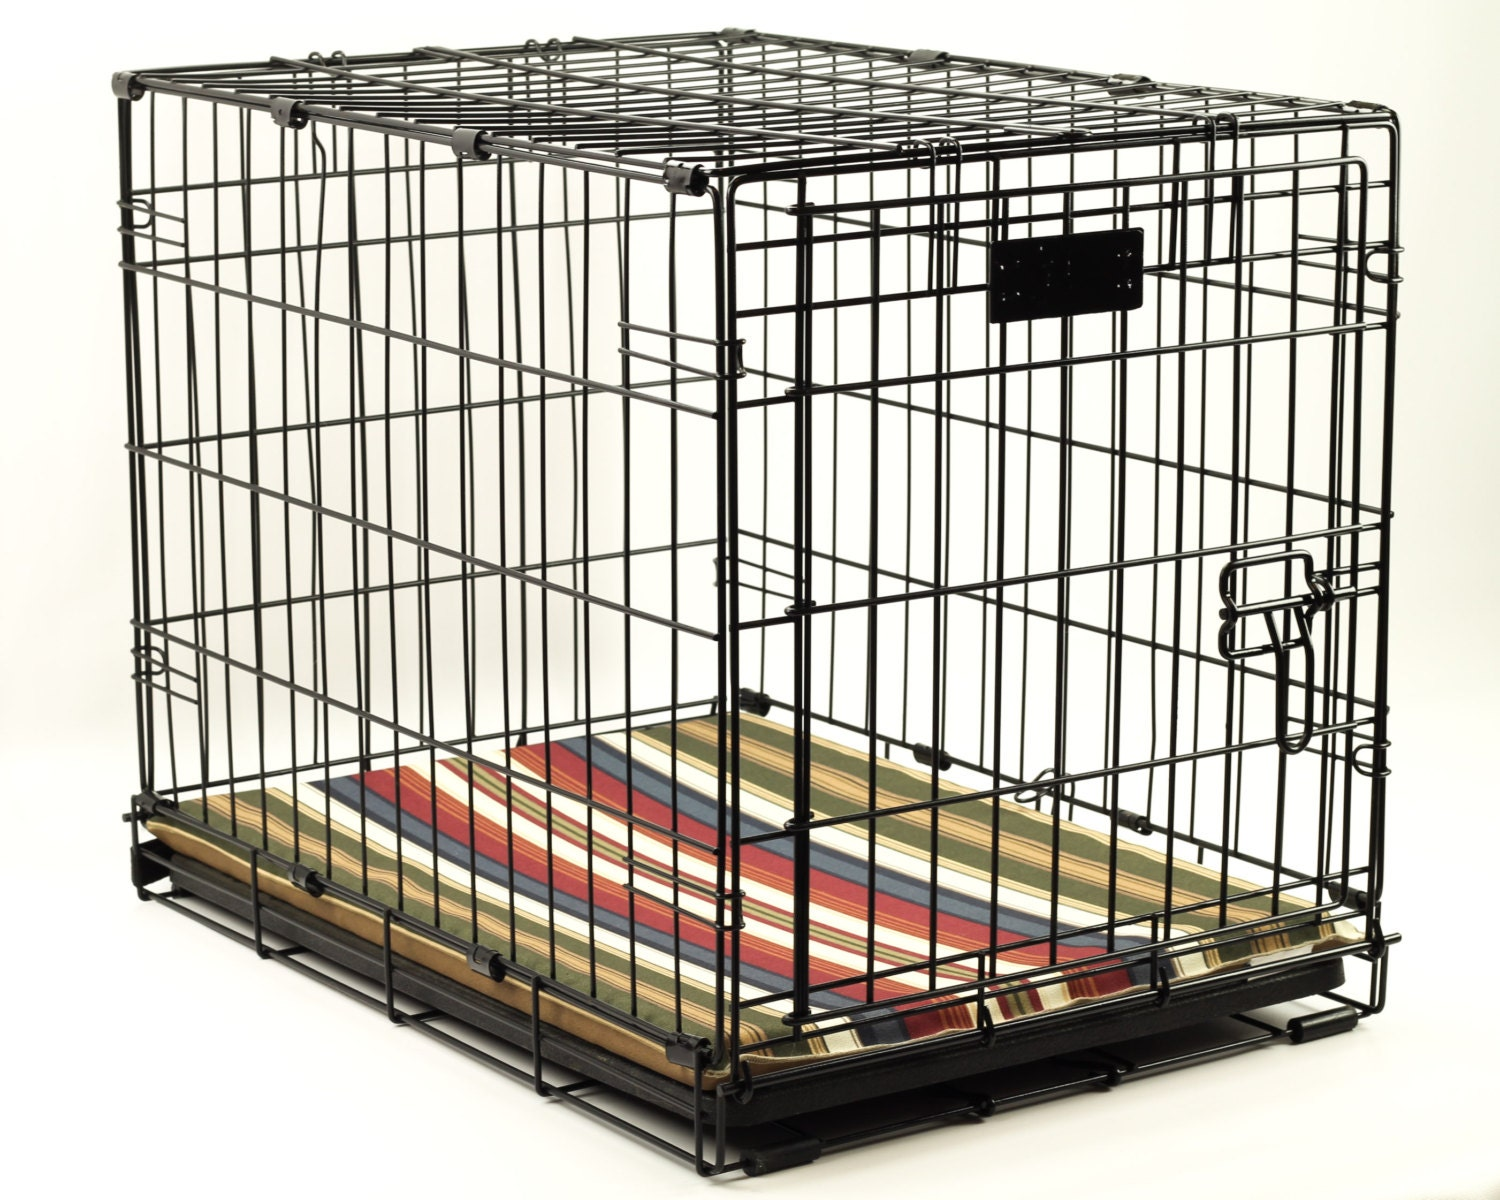 the crates n wildlife houses tray carriers medium dog crate supplies kennels outdoors b mat mats pet home pads